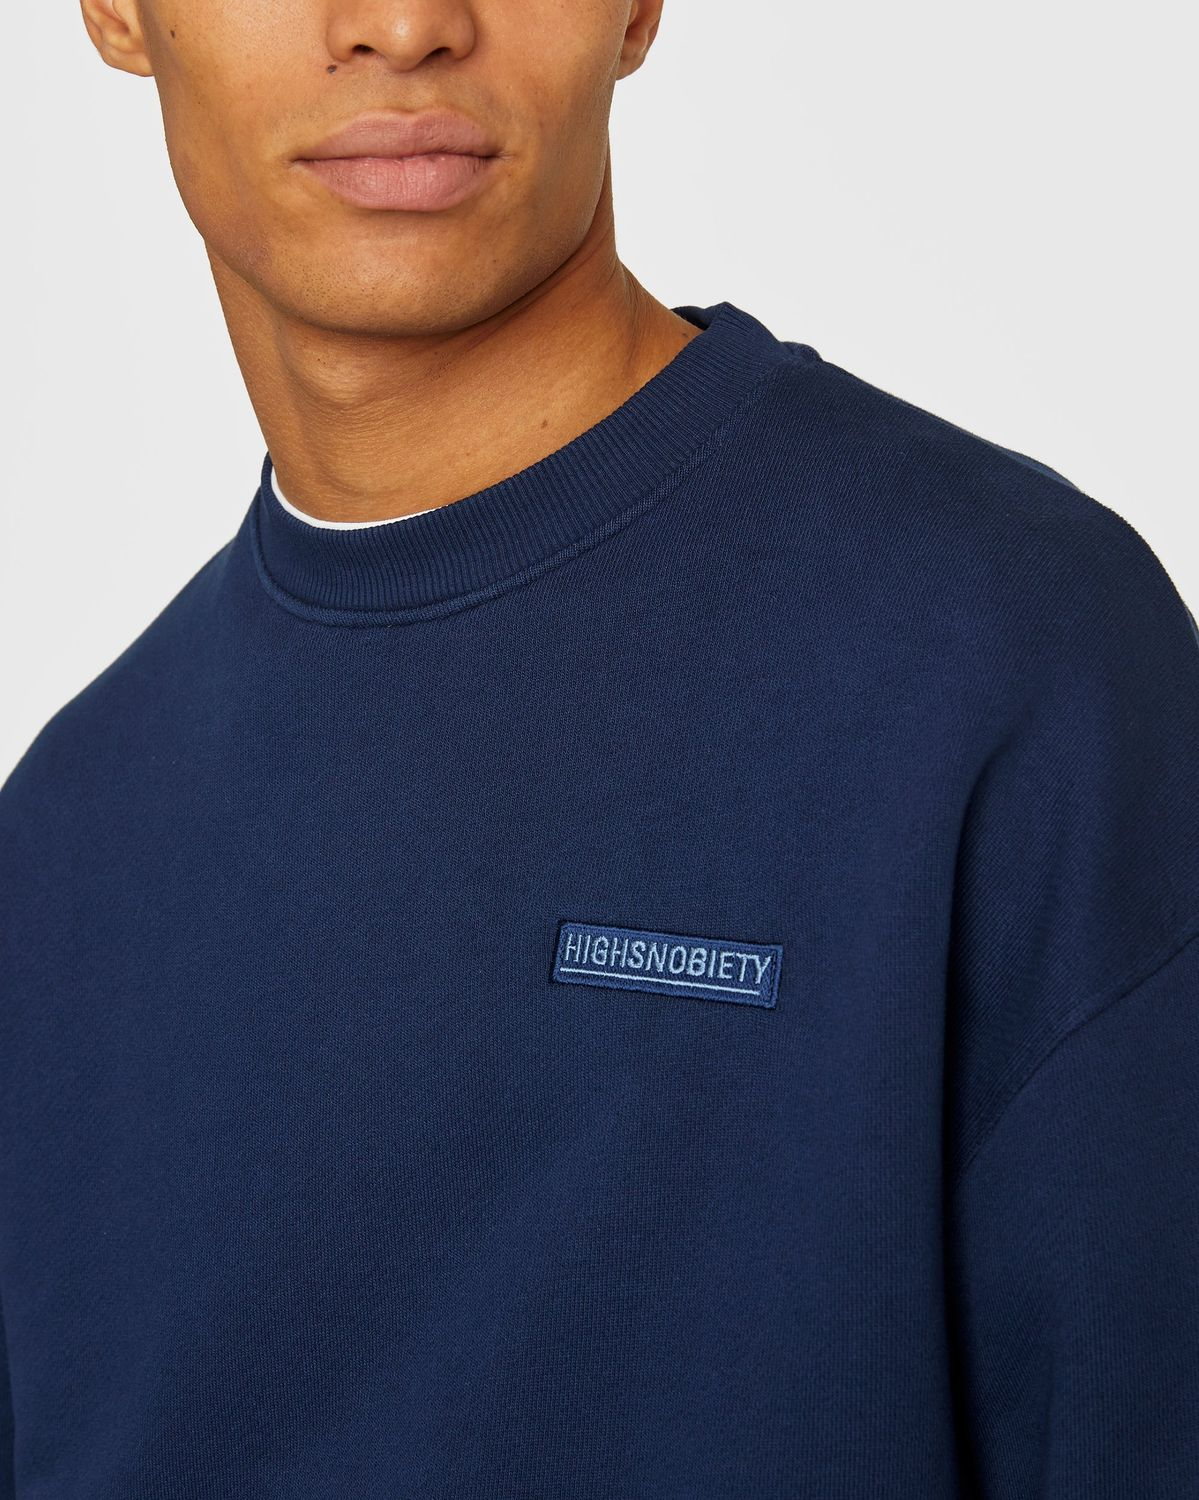 Highsnobiety Staples — Sweatshirt Navy - Image 5